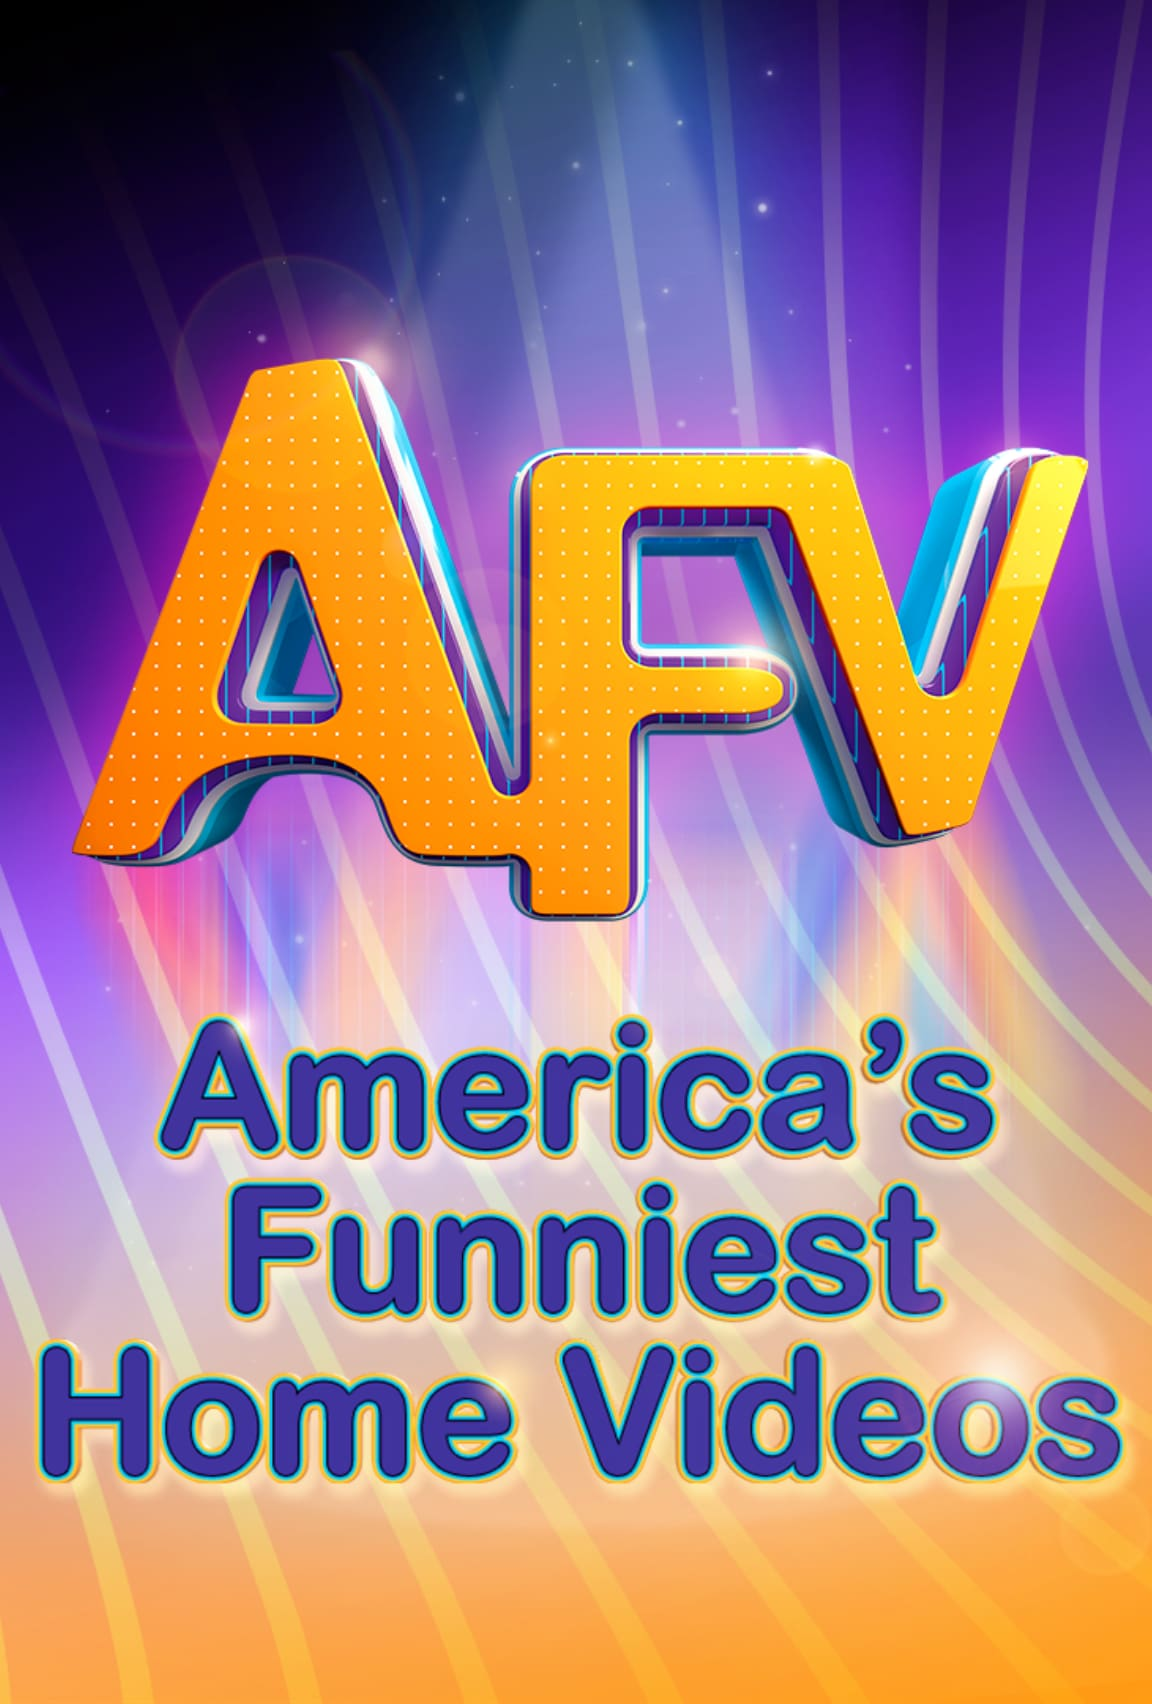 America's Funniest Home Videos (1989)